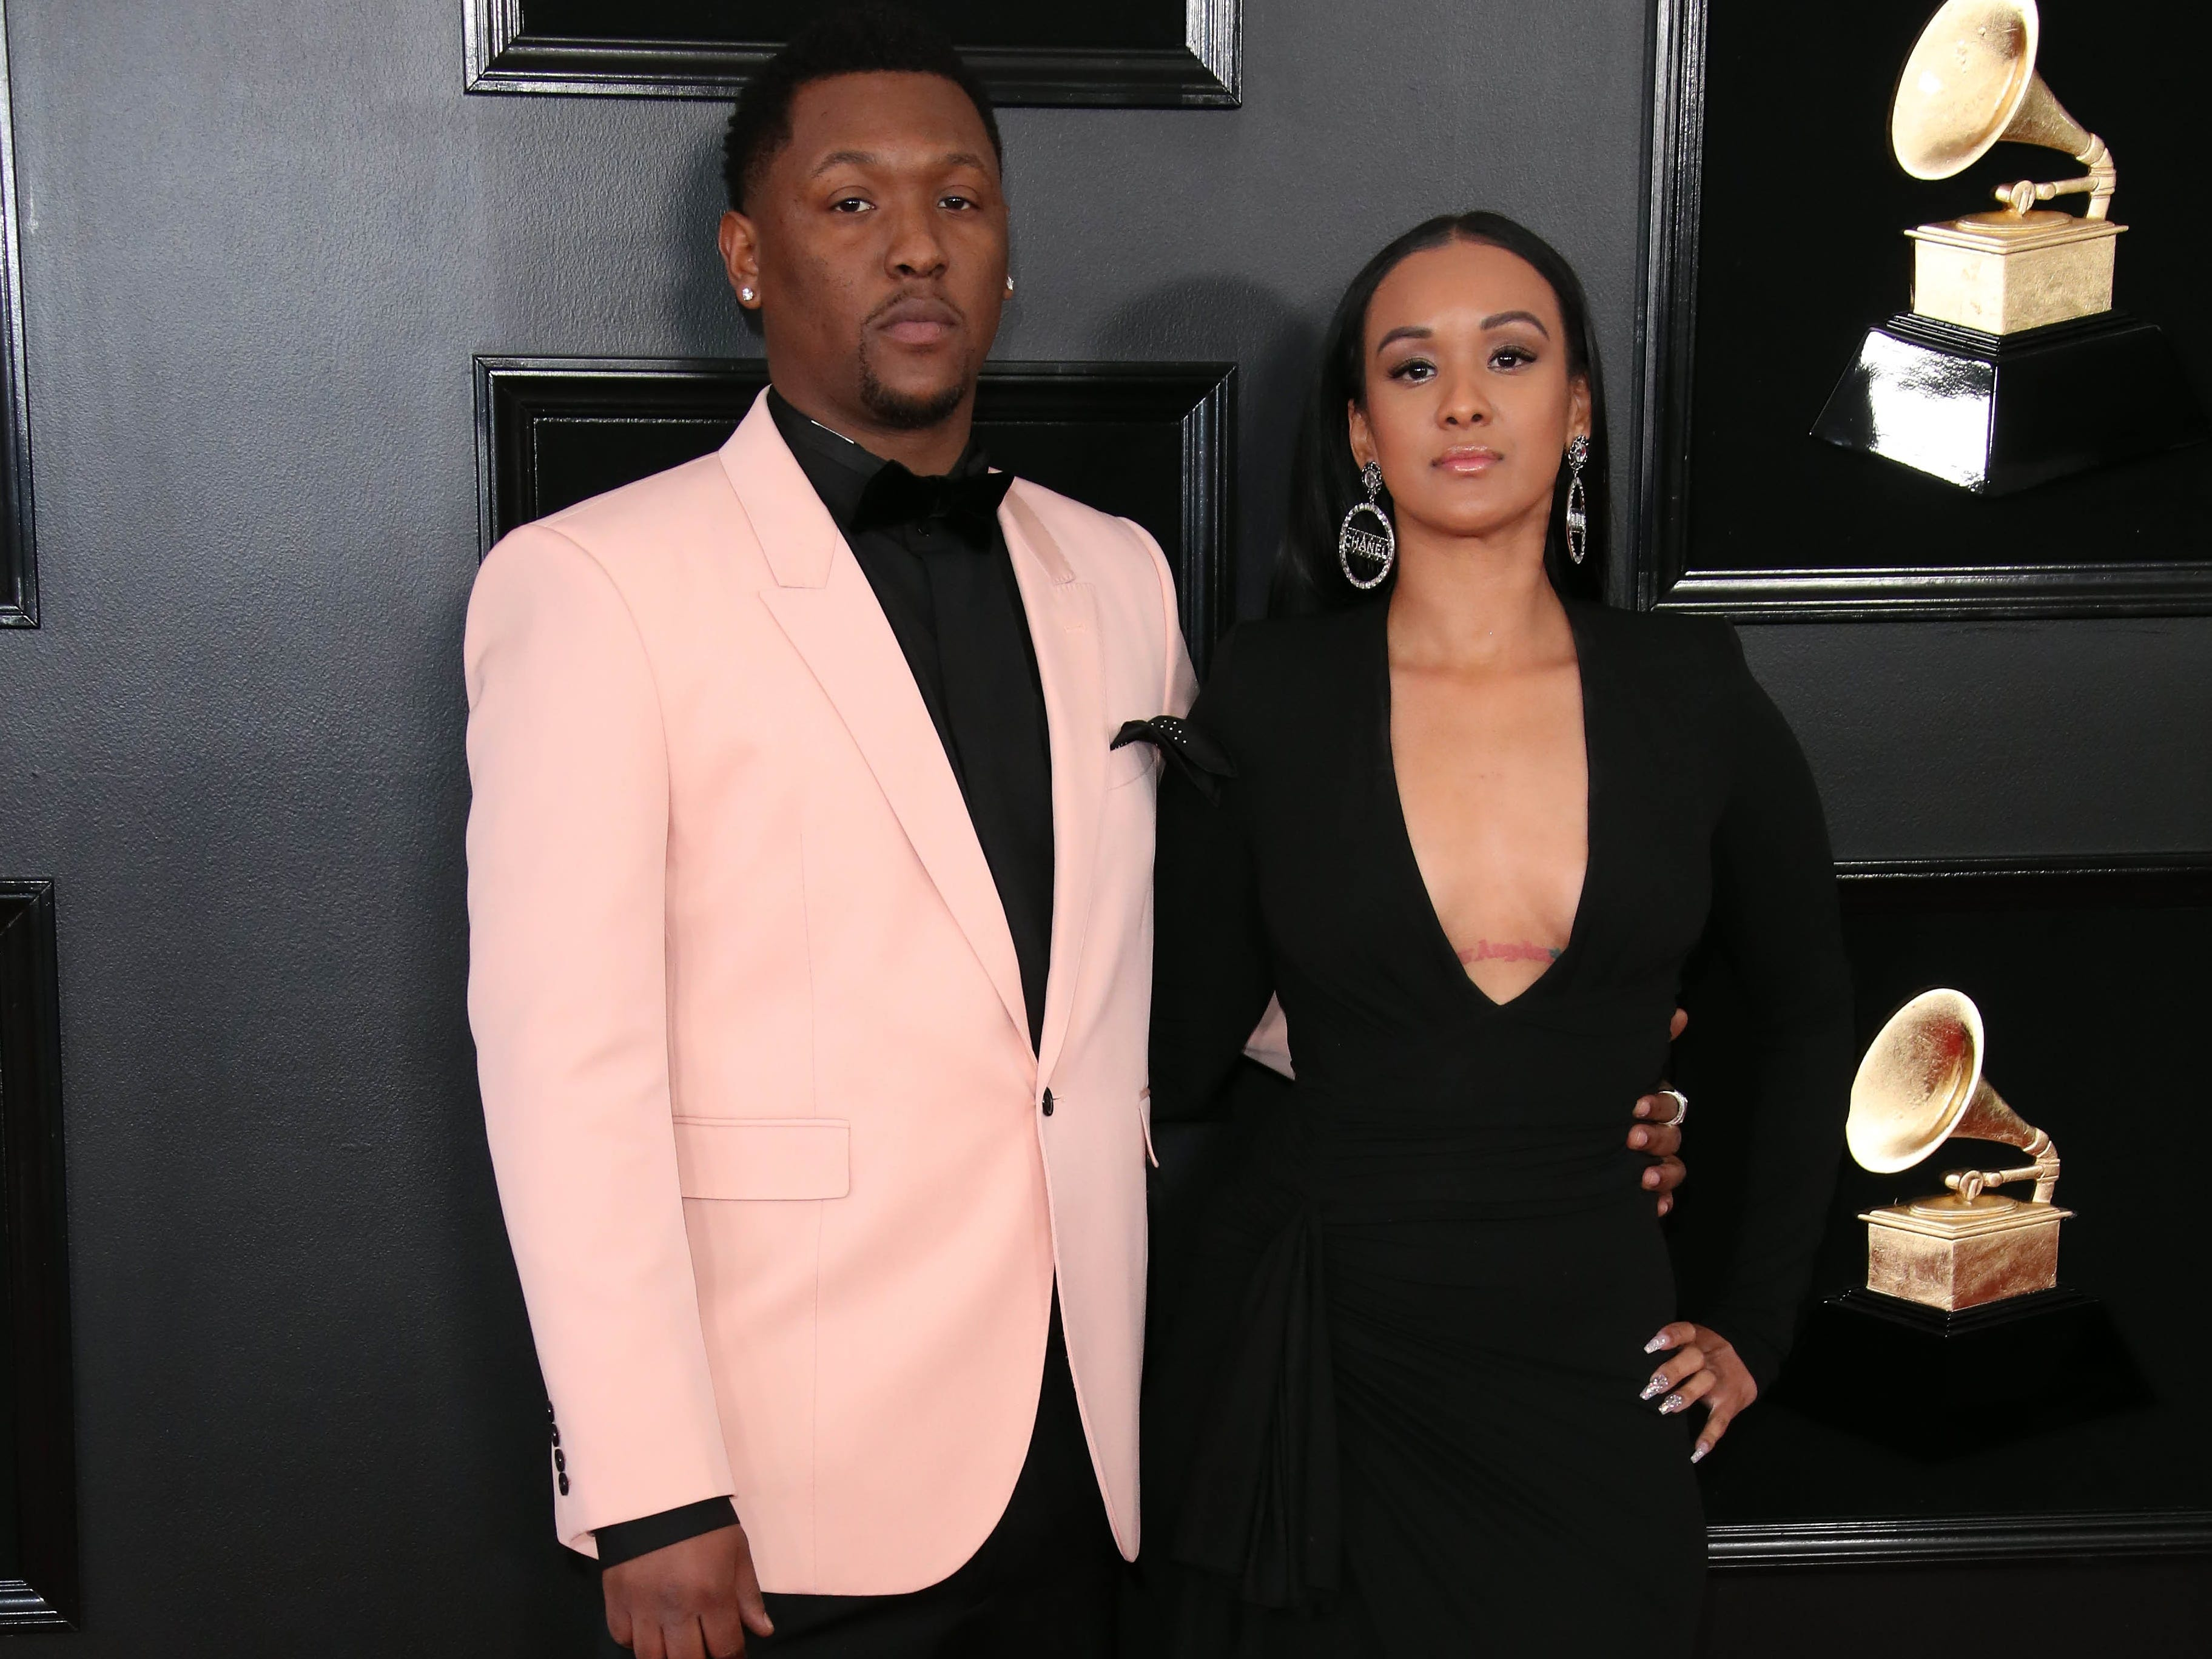 Hit Boy, left, attends the 61st Annual GRAMMY Awards on Feb. 10, 2019 at STAPLES Center in Los Angeles, Calif.